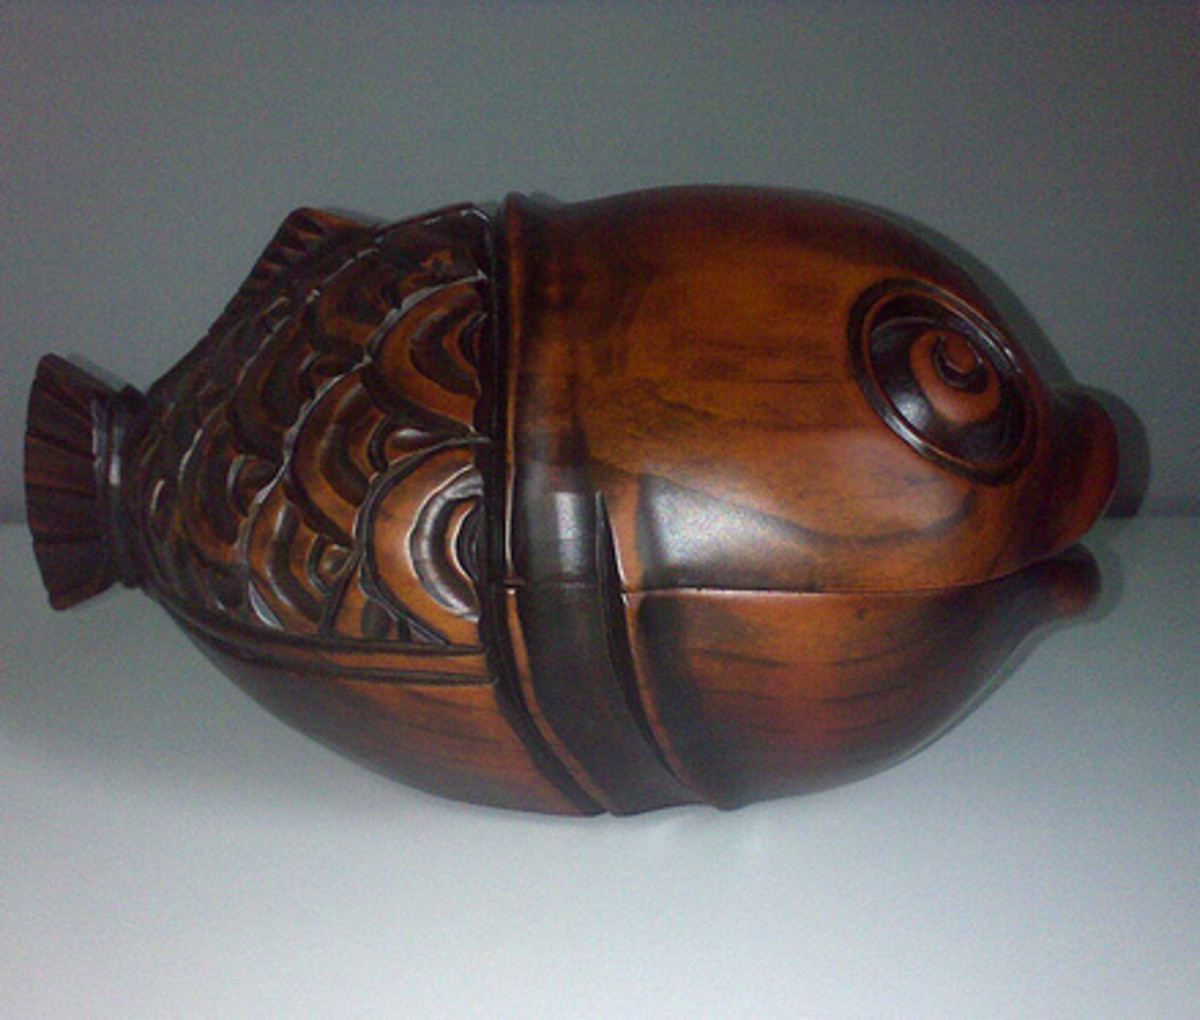 Wooden Box Carved in the shape of a fish